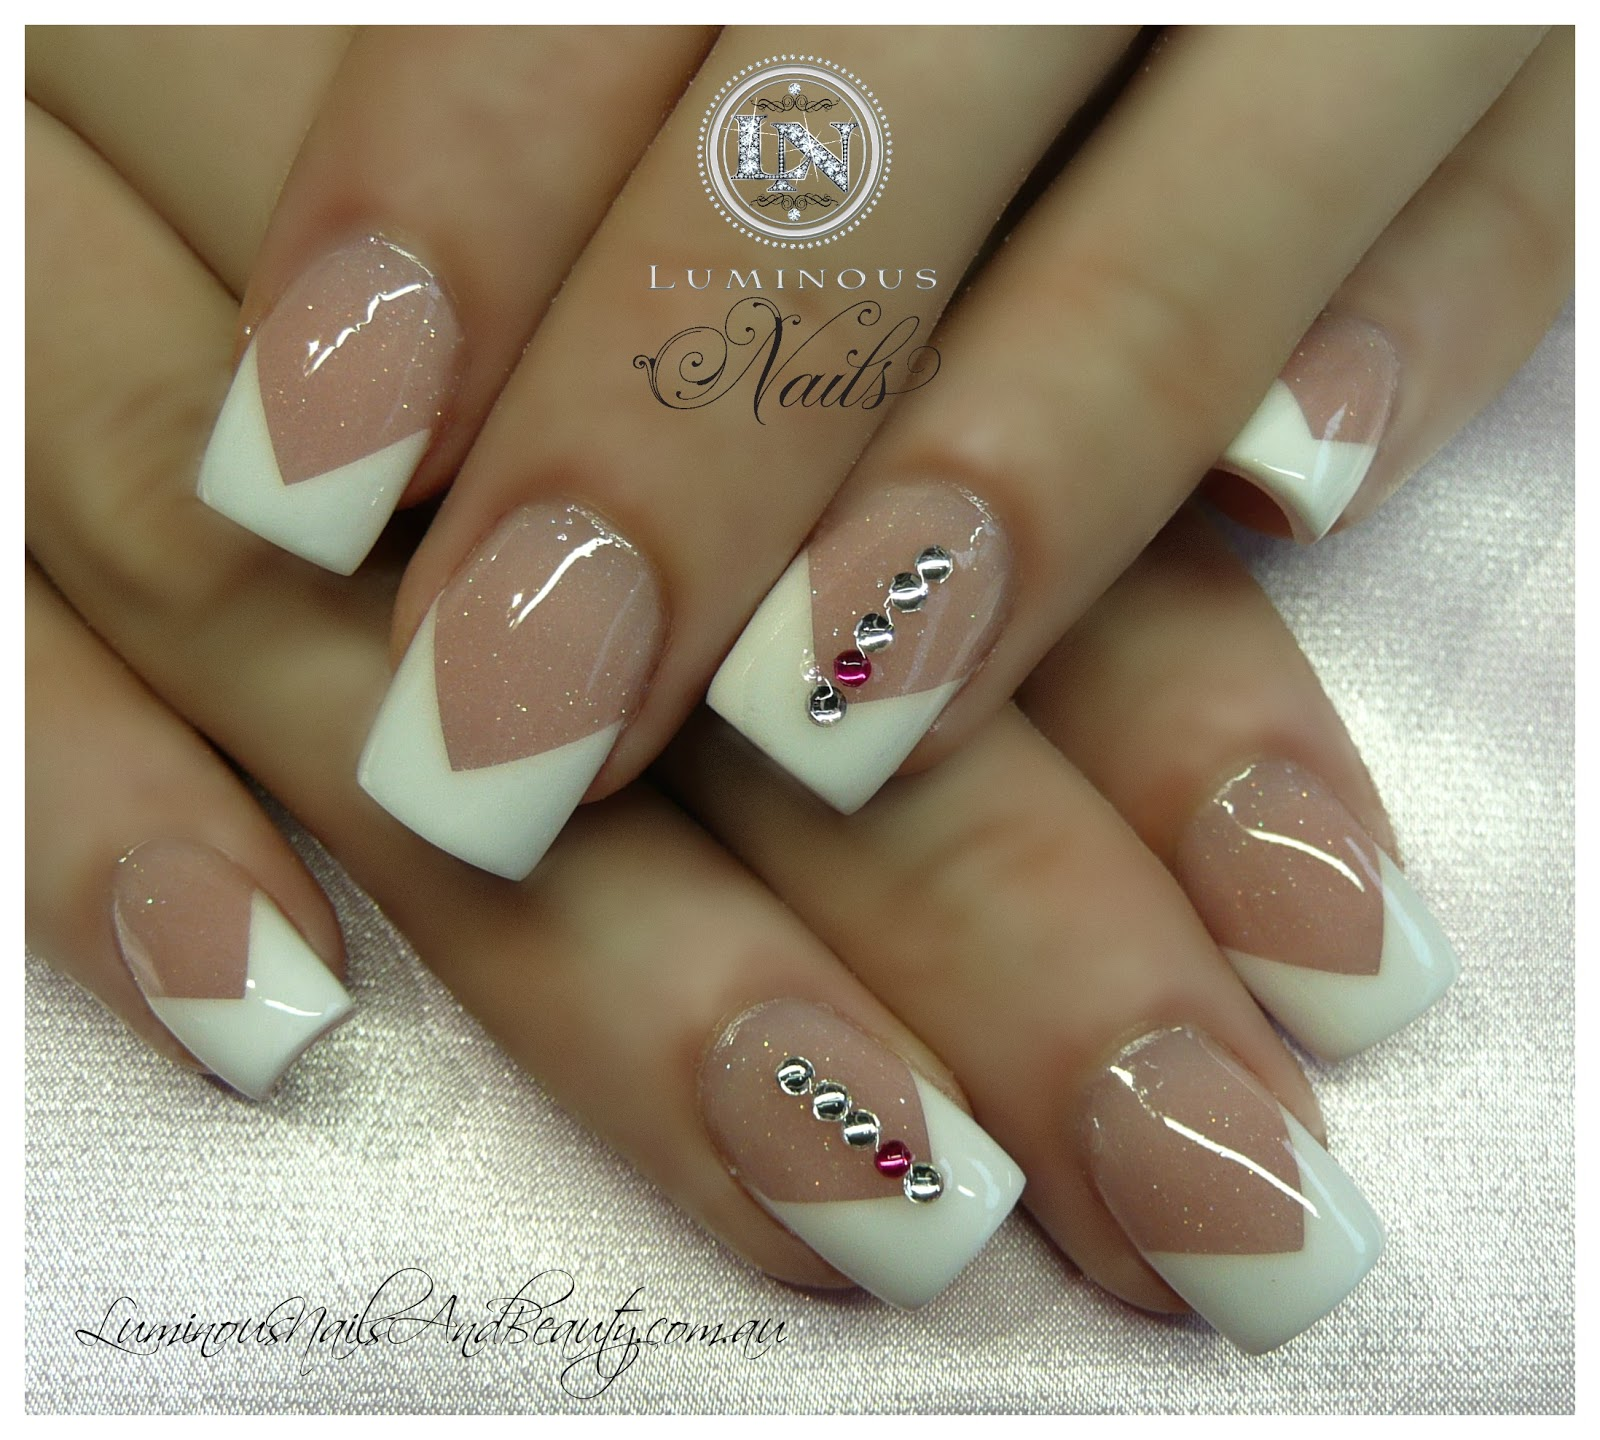 +Nails+And+Beauty,+Gold+Coast+Queensland.+Acrylic+Nails,+Gel+Nails